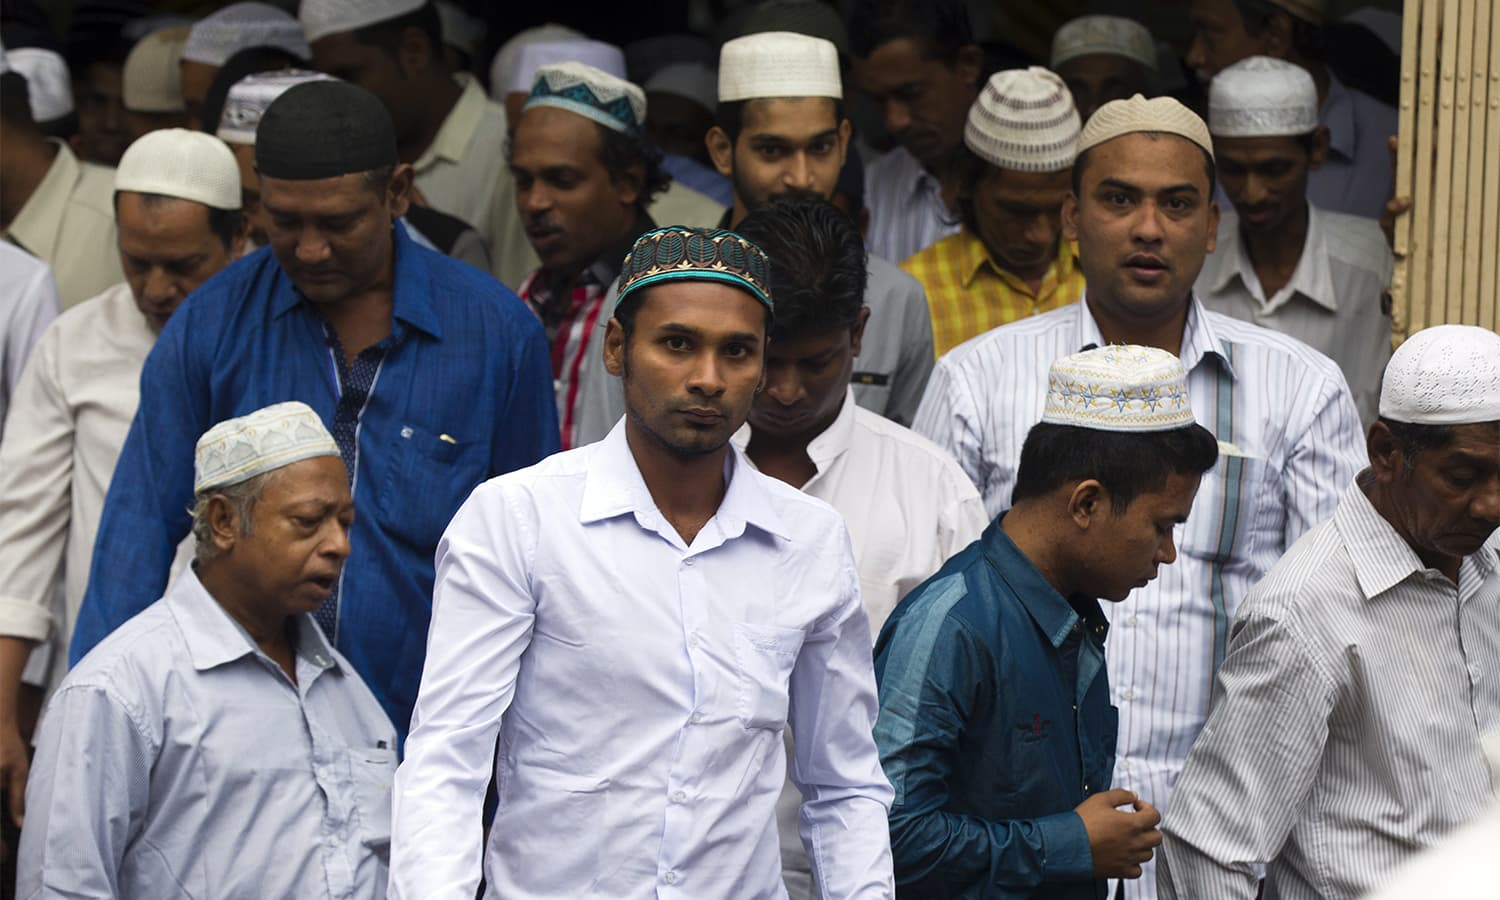 Muslims leave a mosque after offering Eid prayers in Yangon, Myanmar.—AP